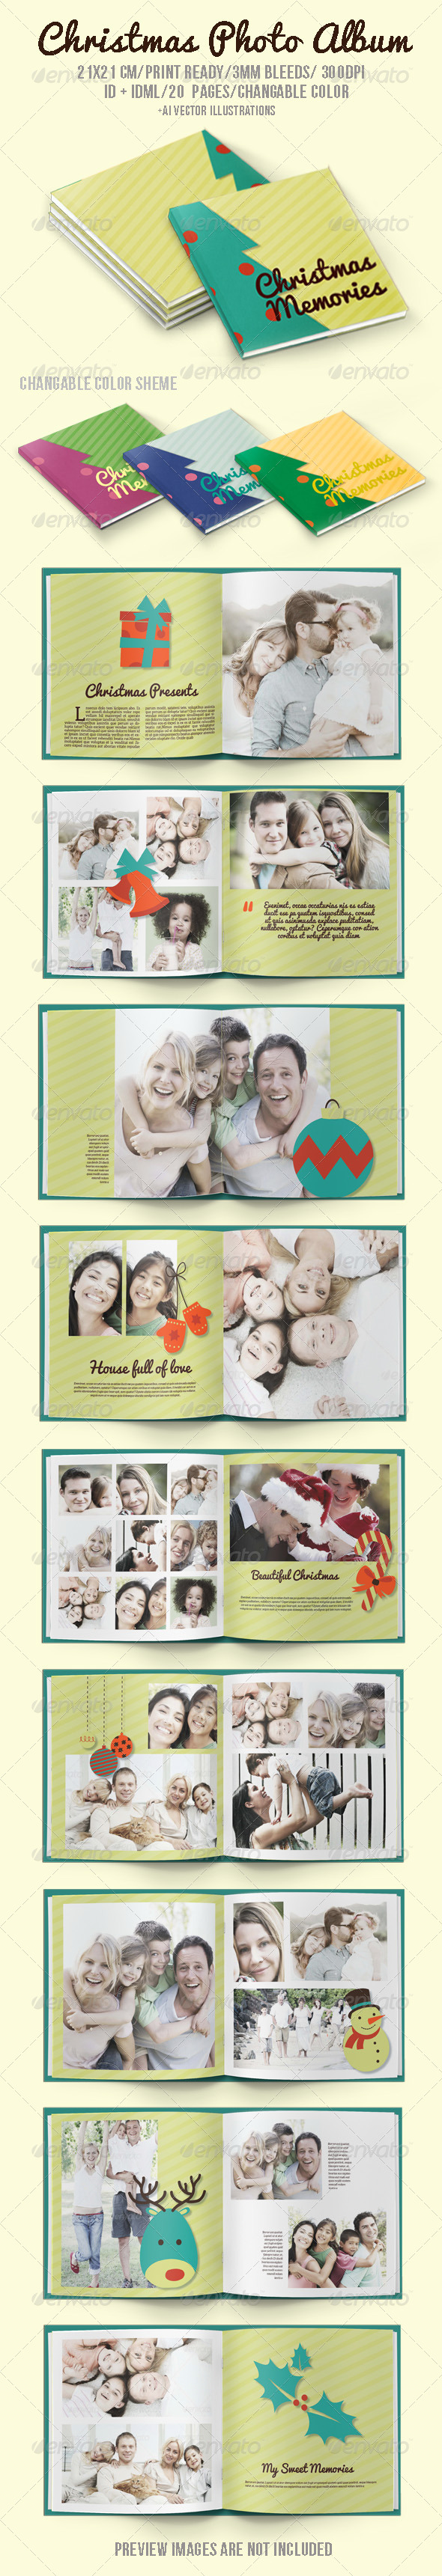 Christmas Memories - Photo Albums Print Templates